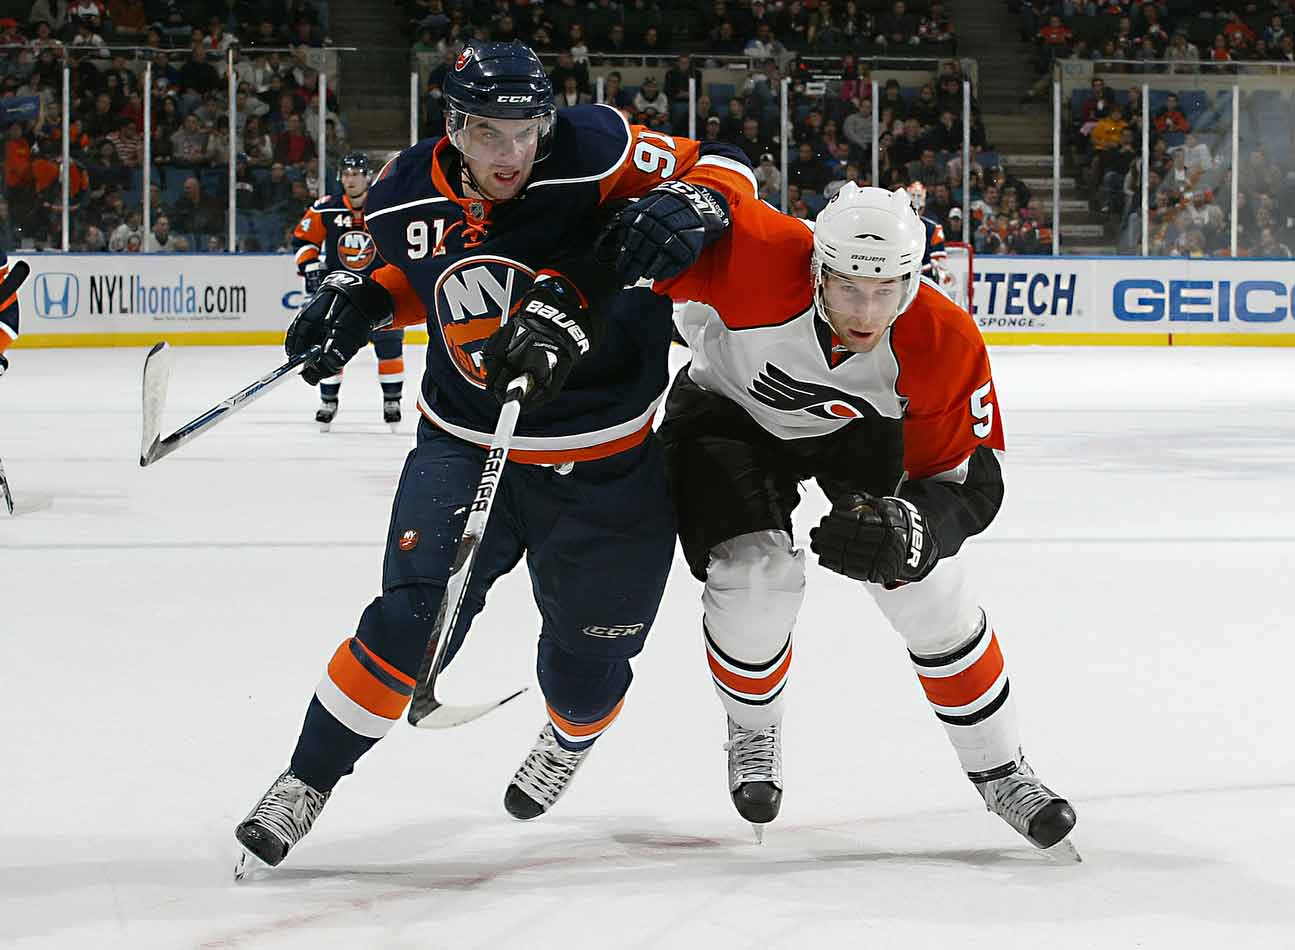 """The first player to be given """"exceptional"""" status by the OHL (making him eligible to play a year early at 15), Tavares broke Wayne Gretzky's league mark for goals by a 16-year-old, with 72.  The first pick in the 2009 NHL draft, he went a solid 24-30-54 for the Islanders and finished fifth in the Calder voting won by towering 19-year-old Sabres defenseman Tyler Myers, the 12th selection."""